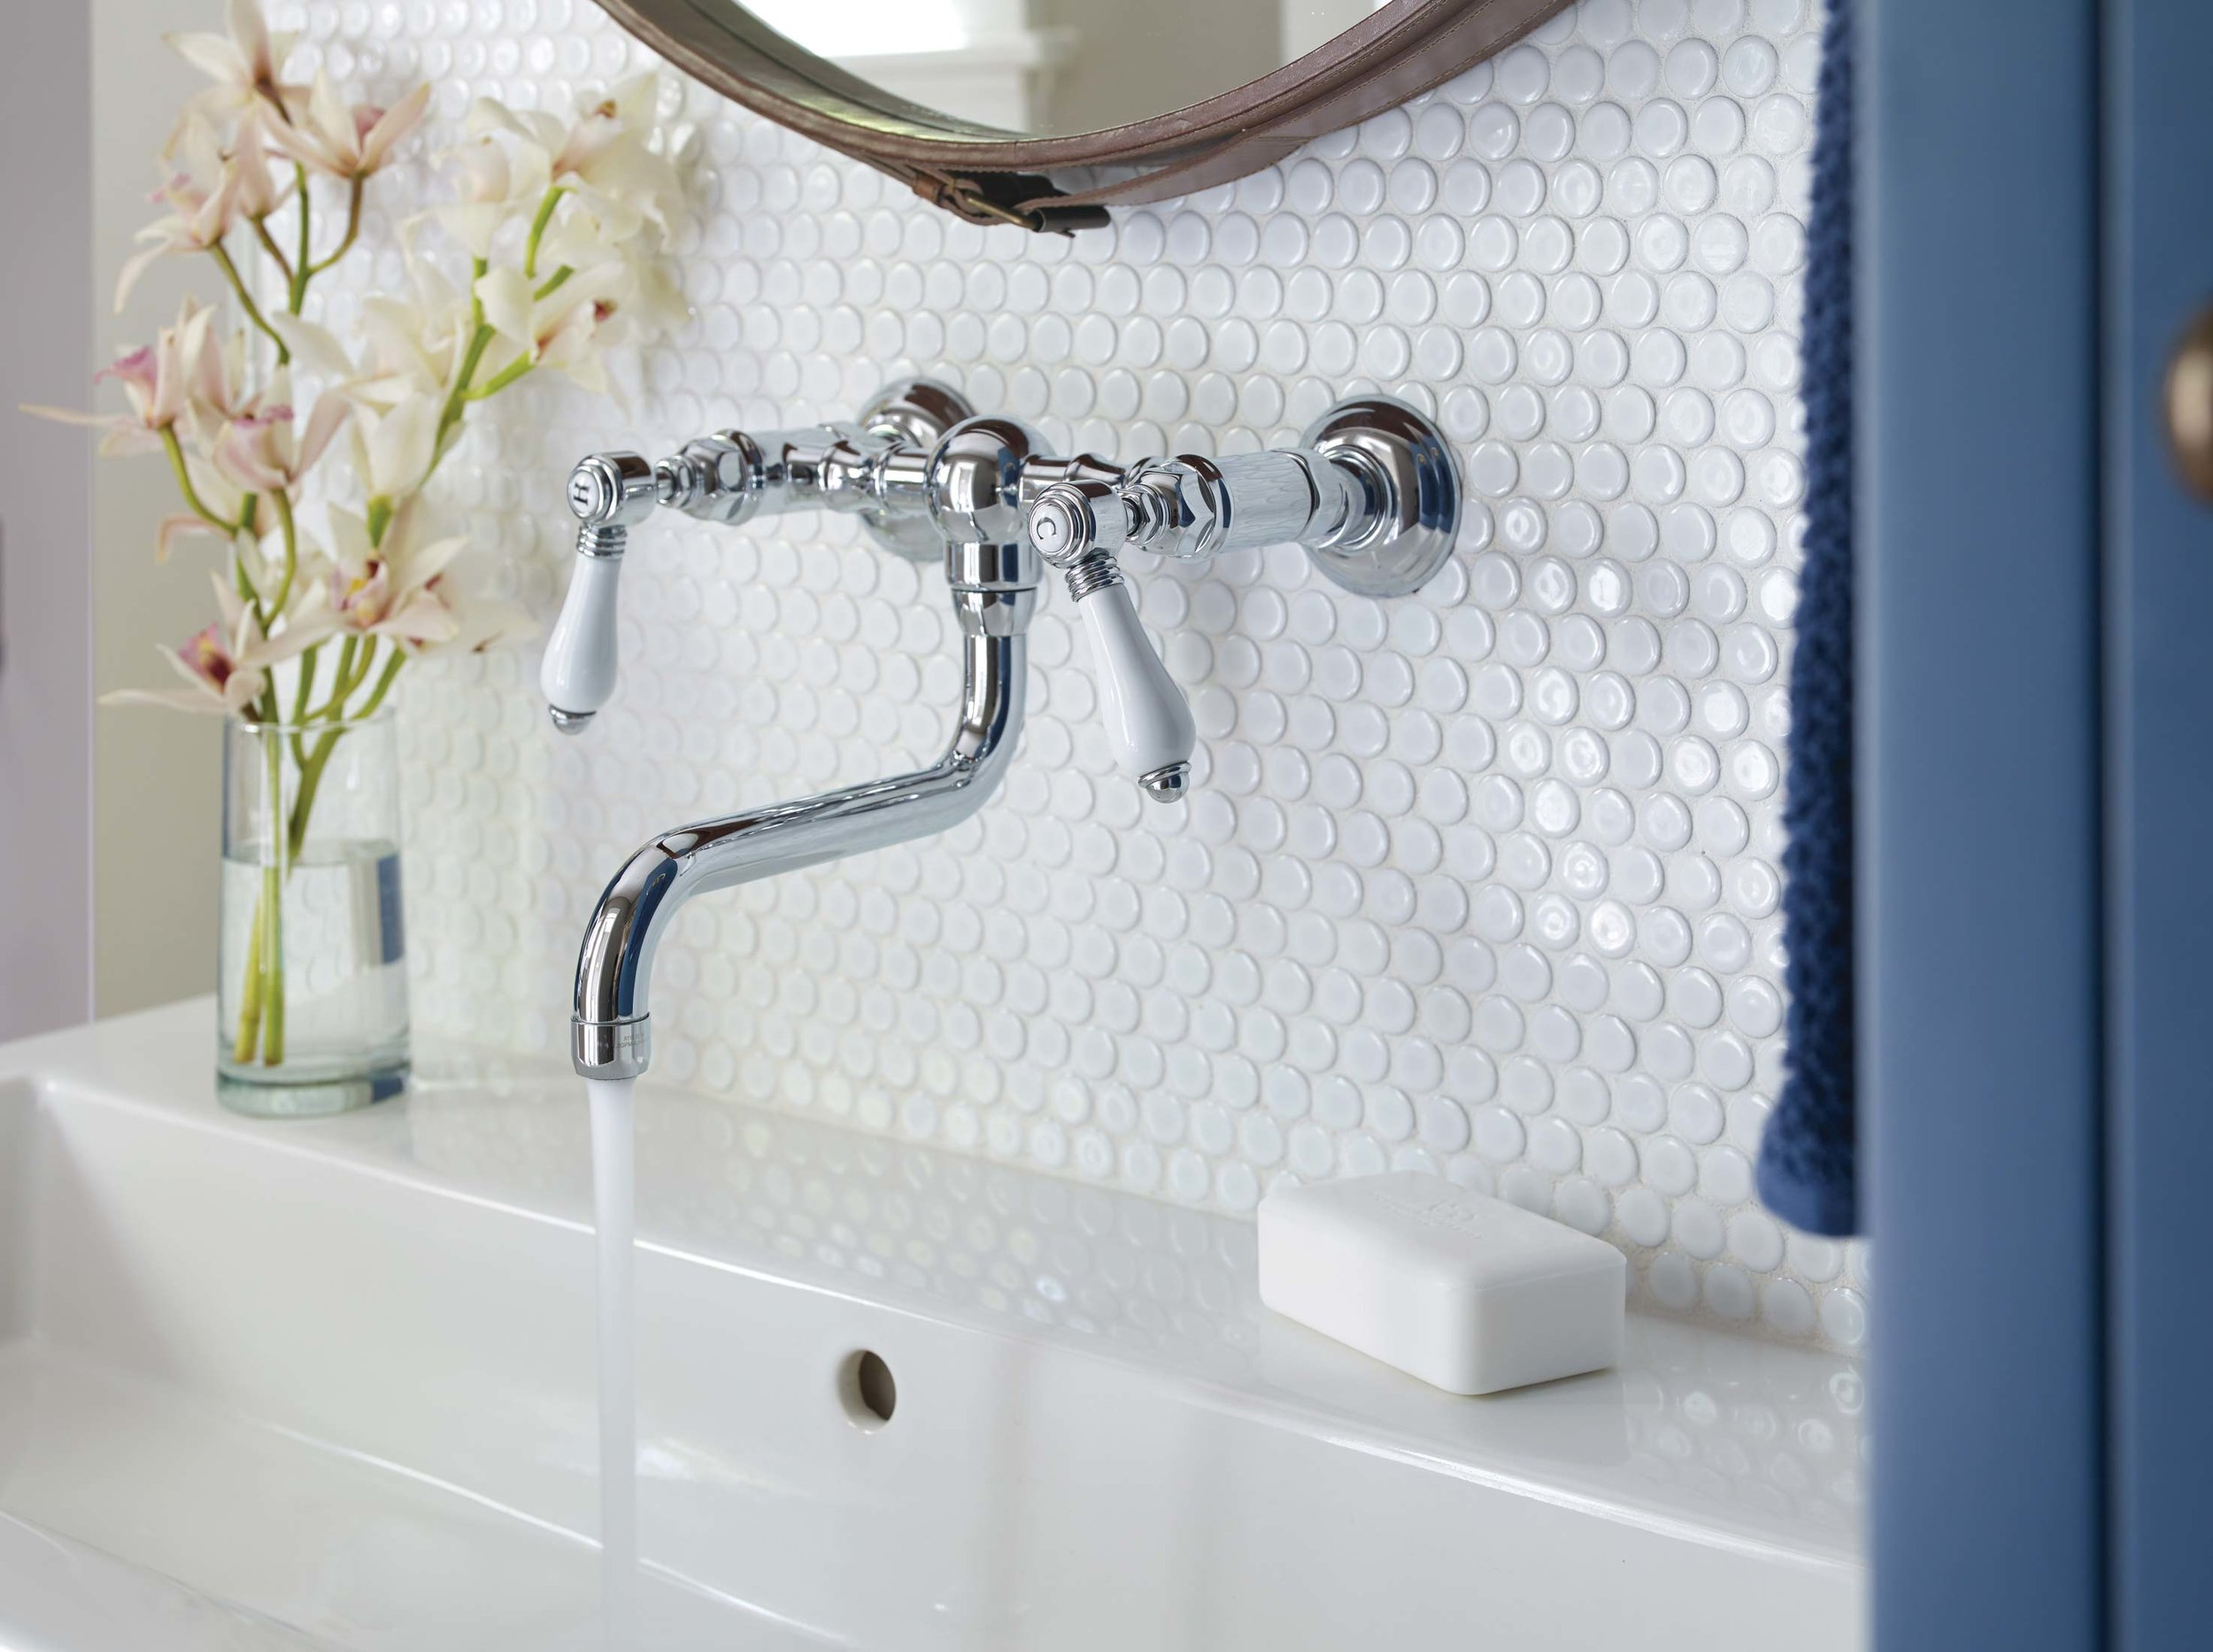 A trough sink with wall fixture for quick post-beach rinsing.